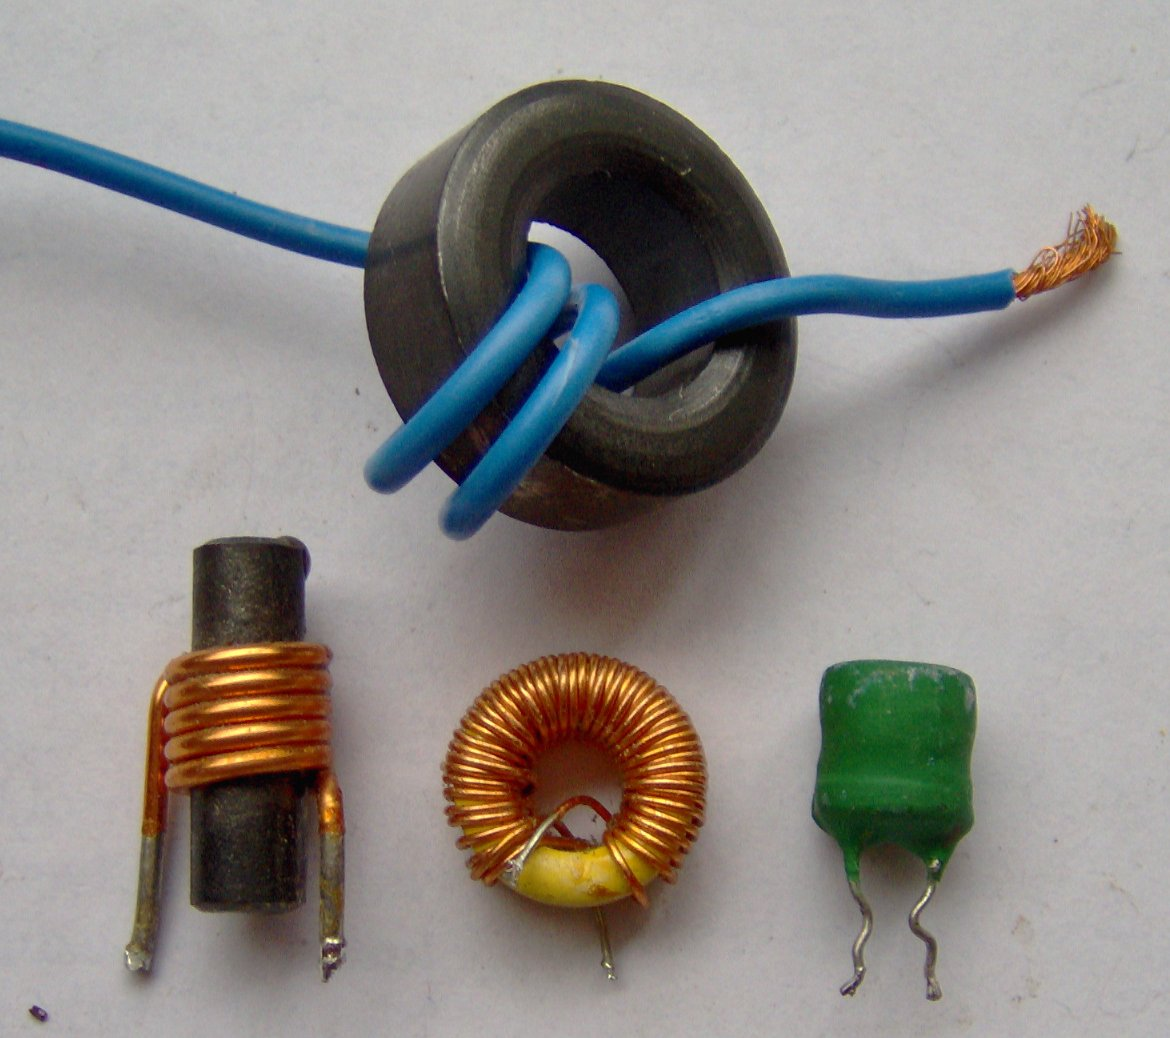 Inductor Wikipedia Circuit Board Low Price Induction Cookerb3 View